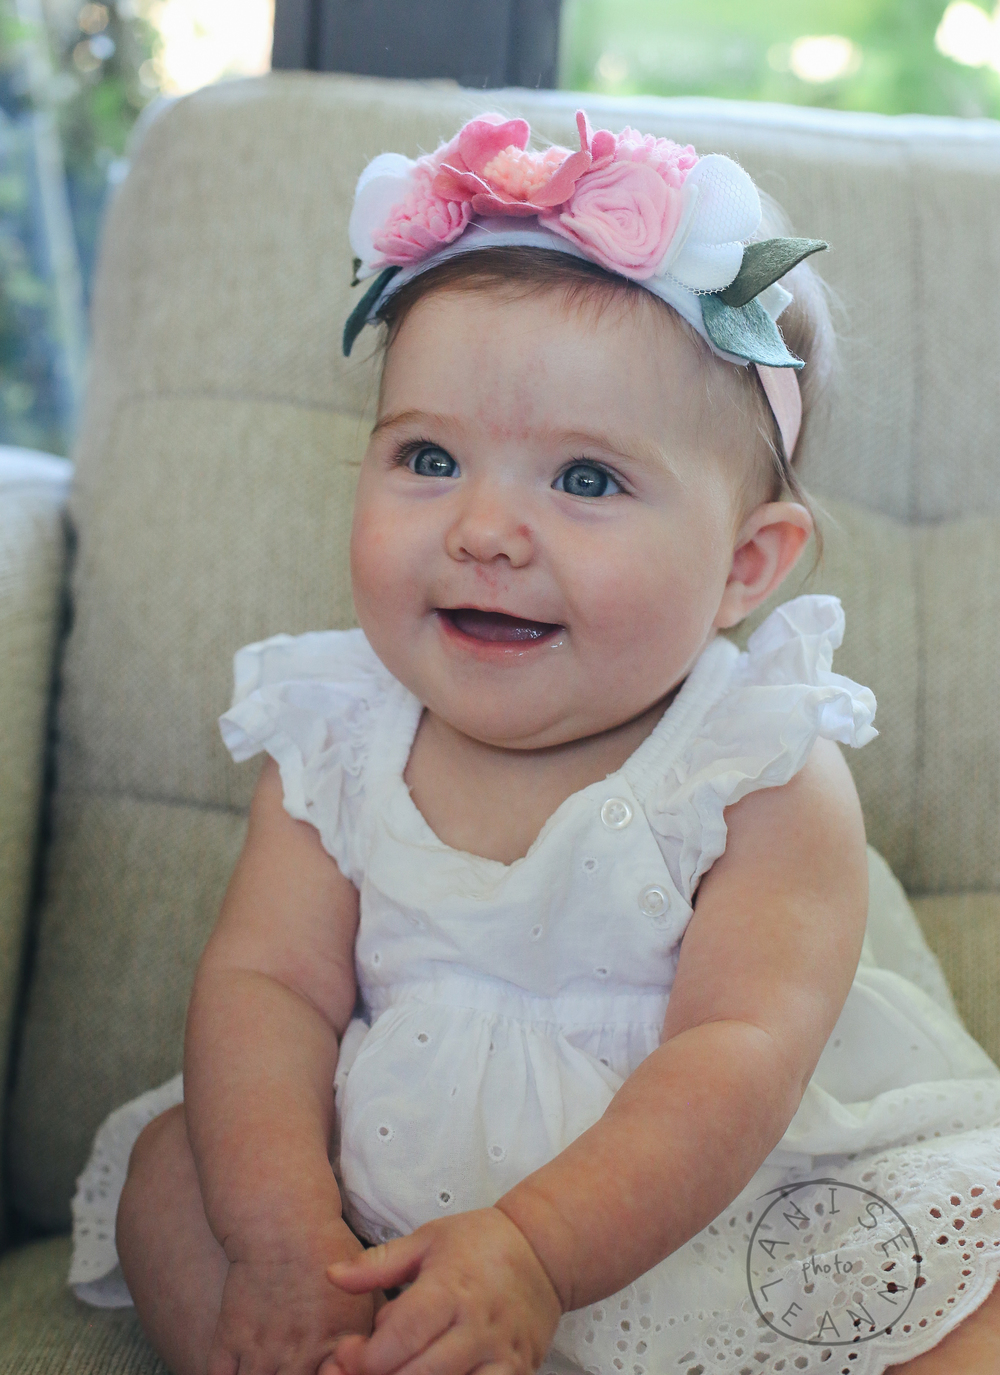 holland-6mo-watermark-12.jpg